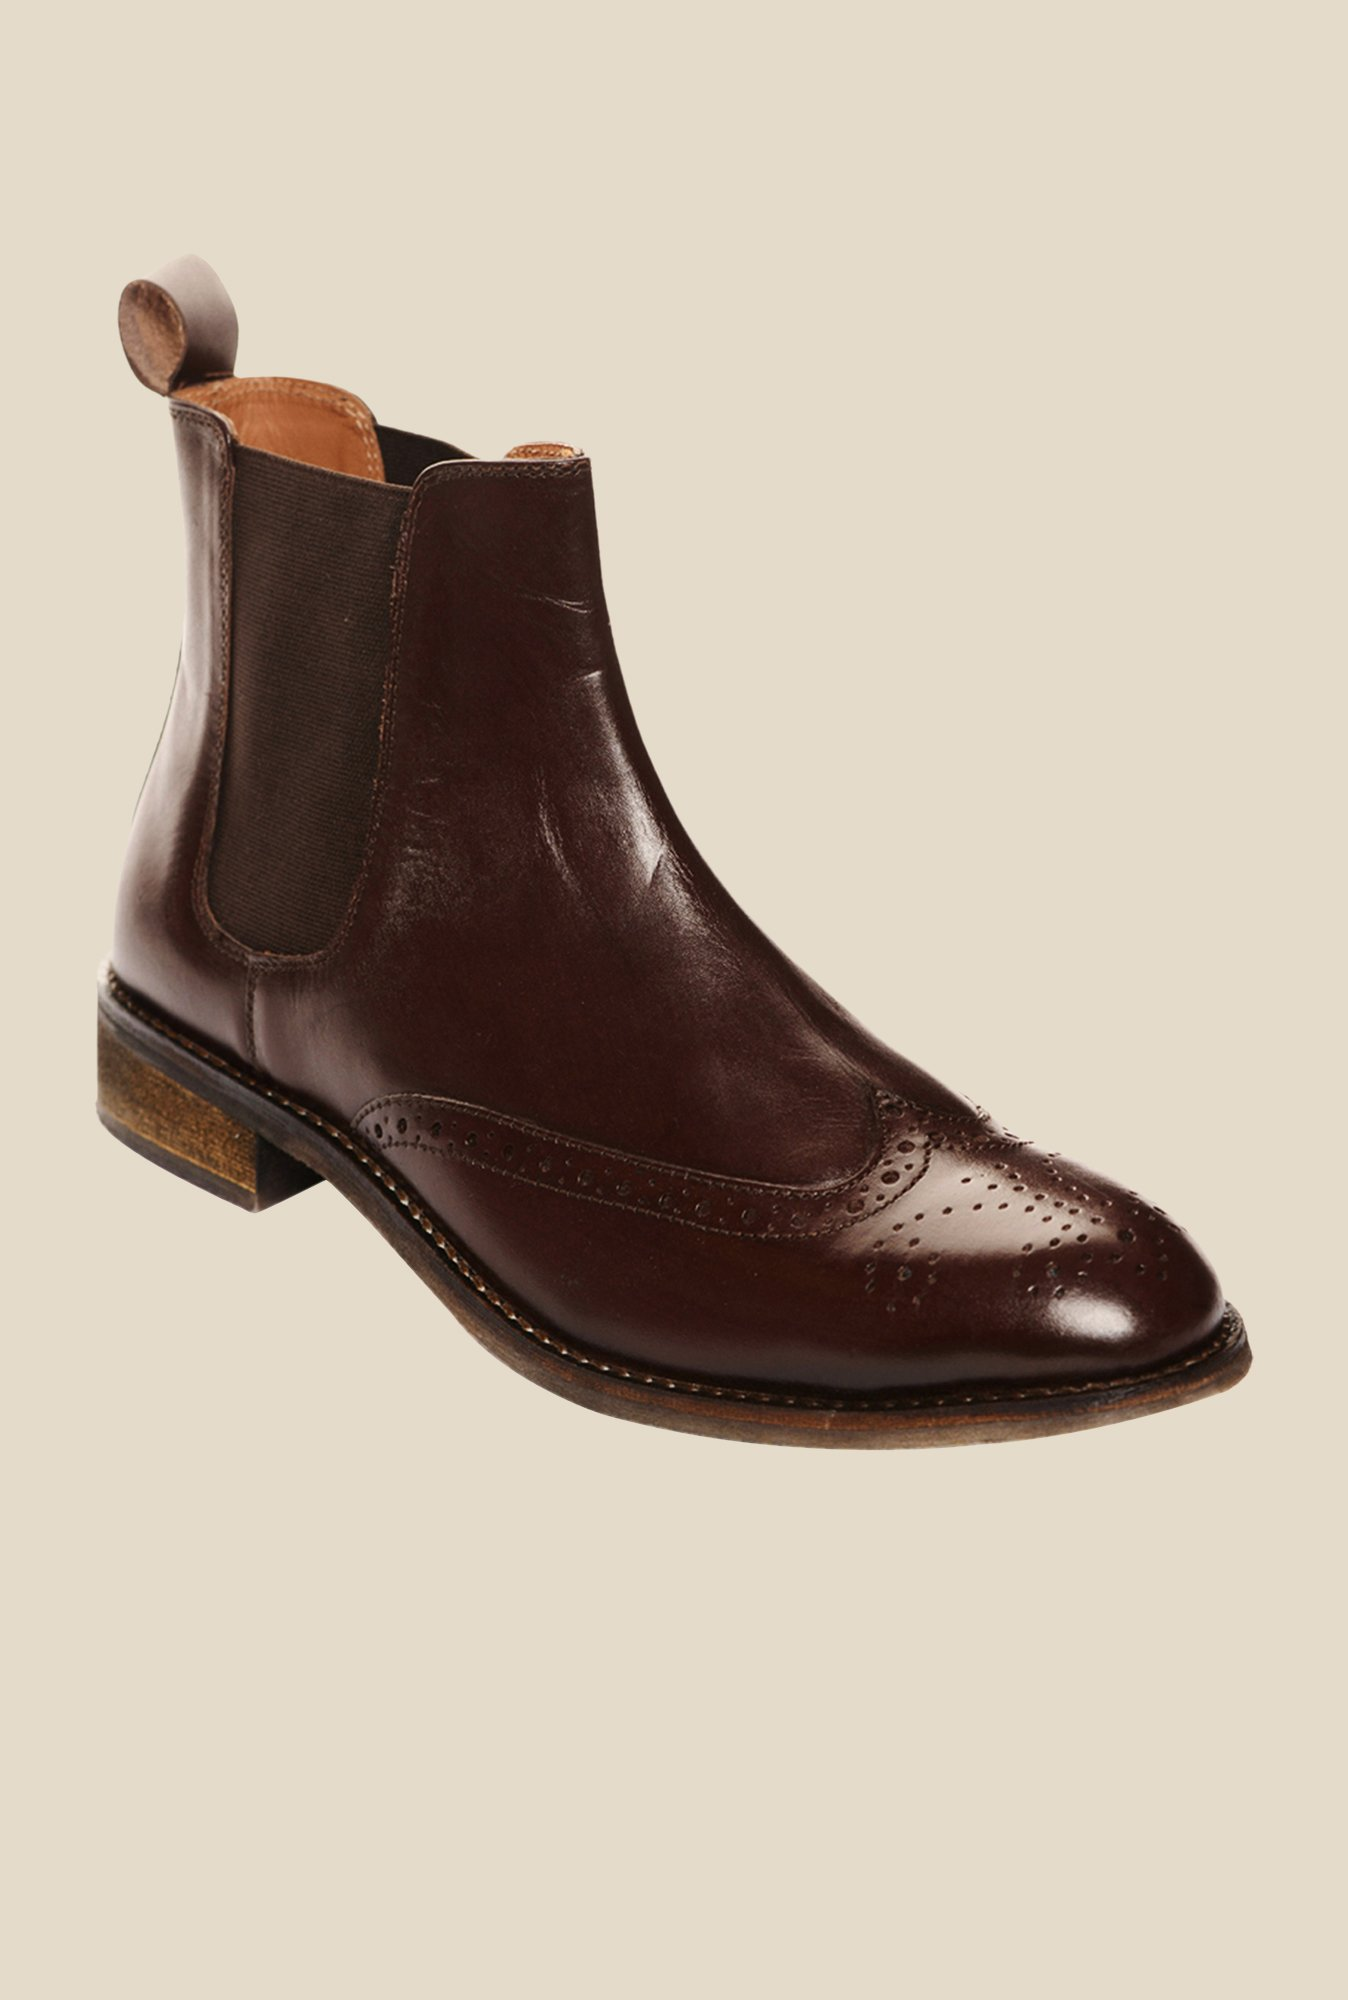 Bruno Manetti Brown Chelsea Boots